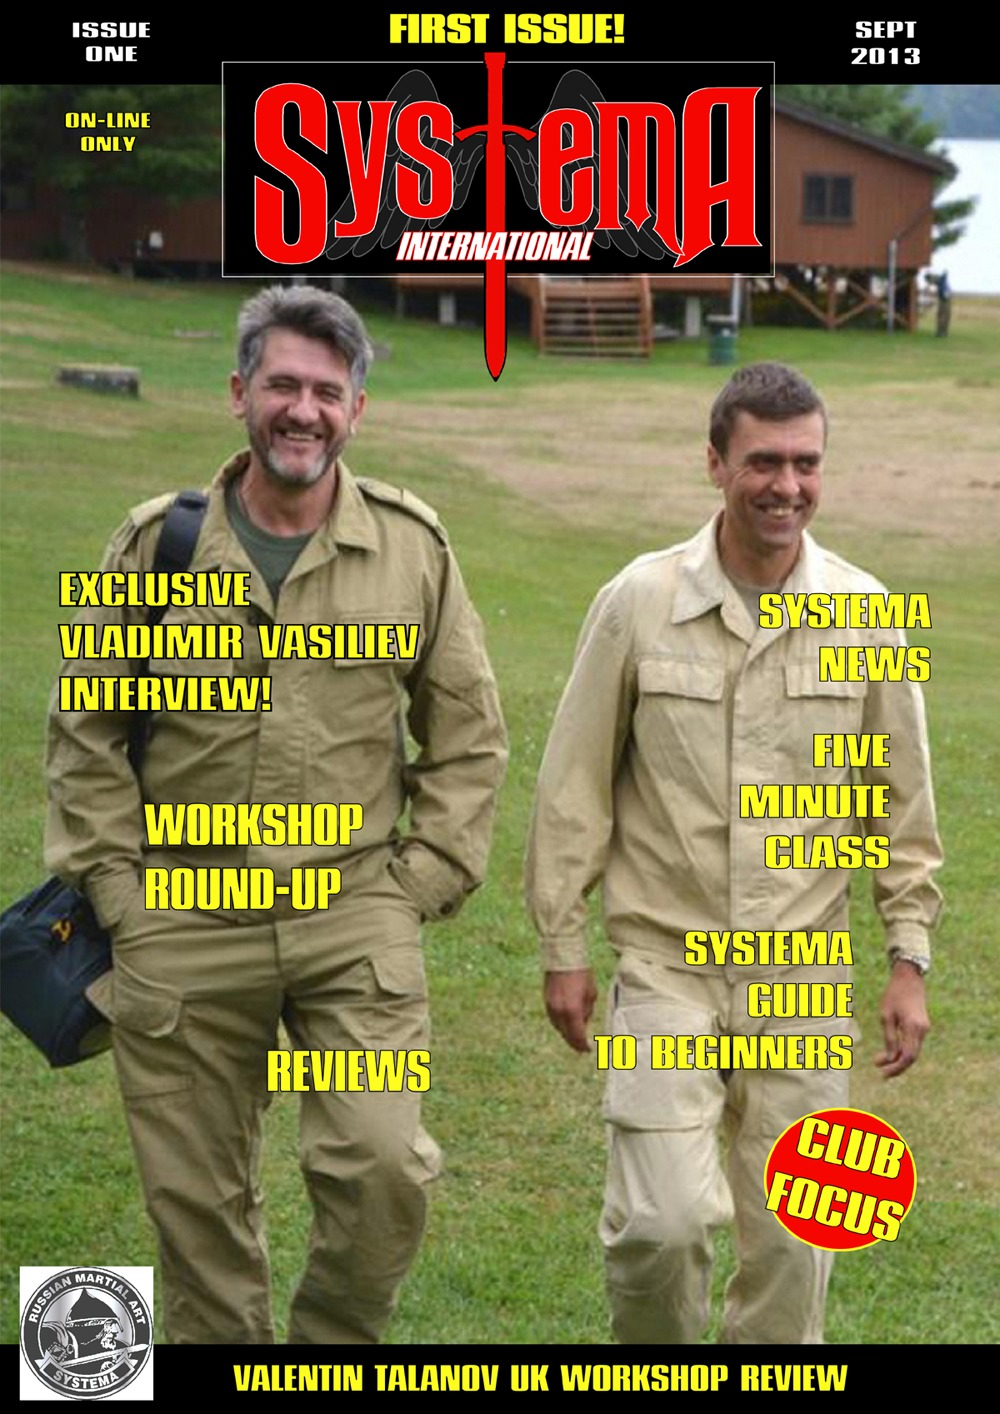 Systema International Issue 1